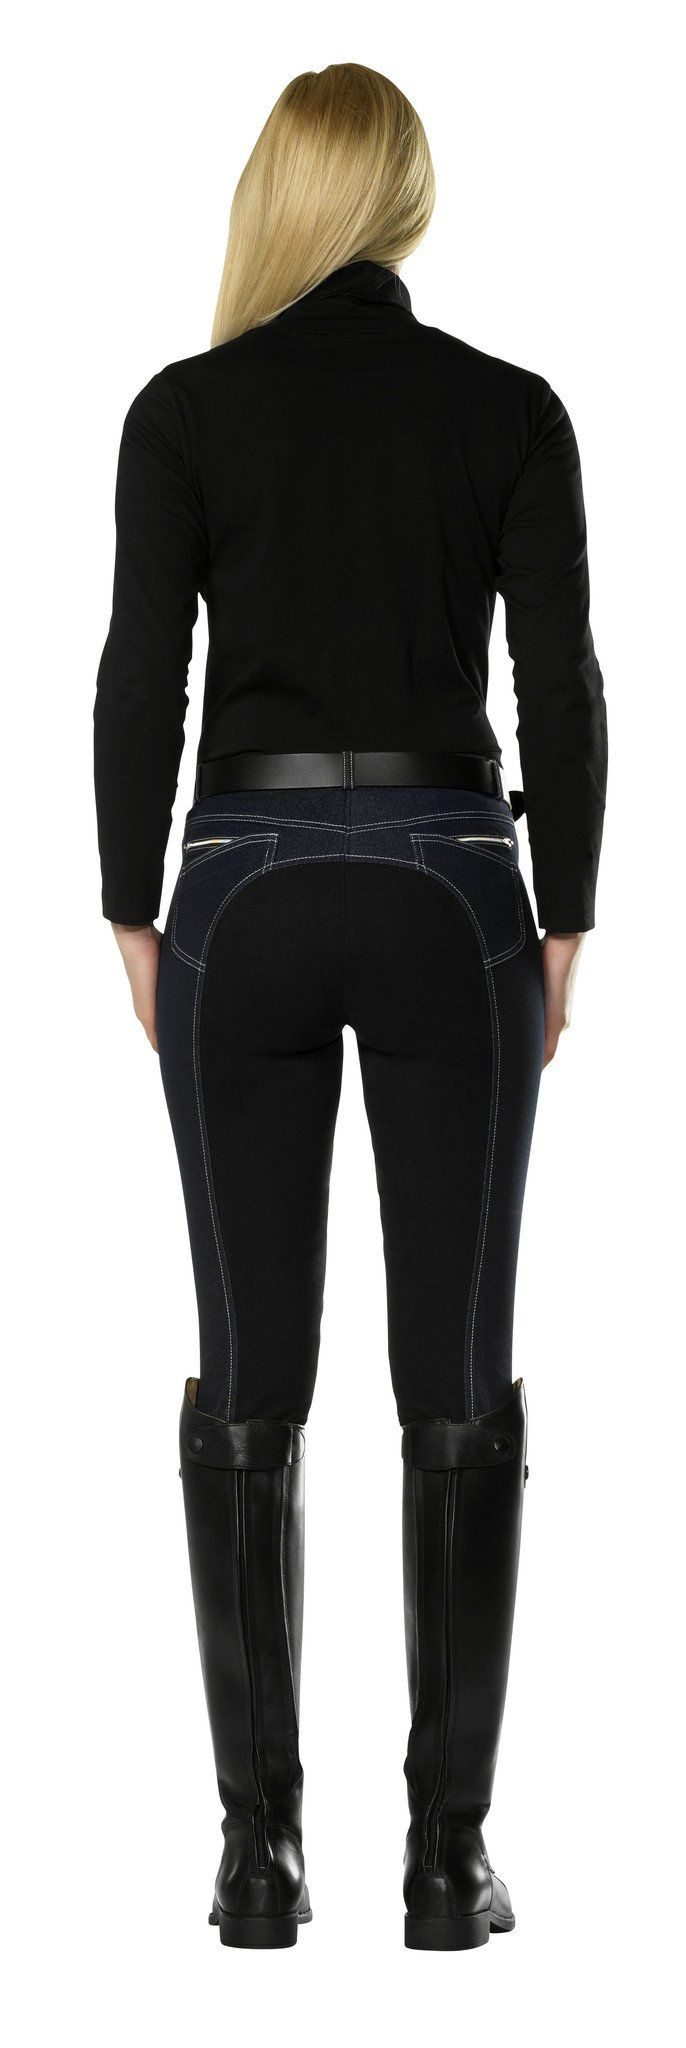 PFIFF Denim effect full seat breeches  - Eqclusive  - 2